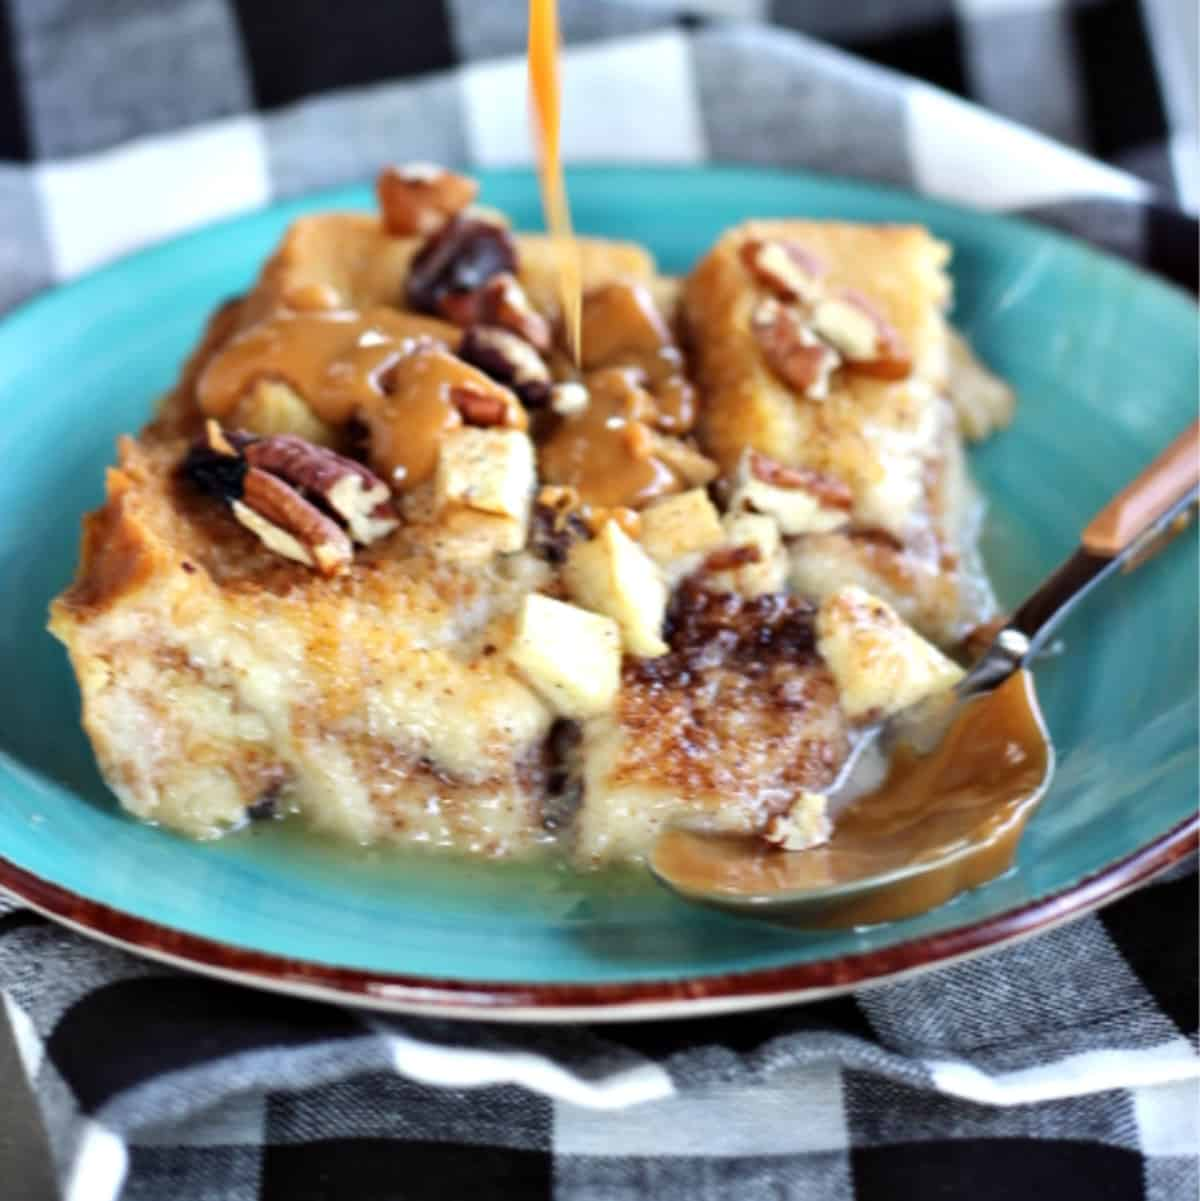 green plate with bread pudding